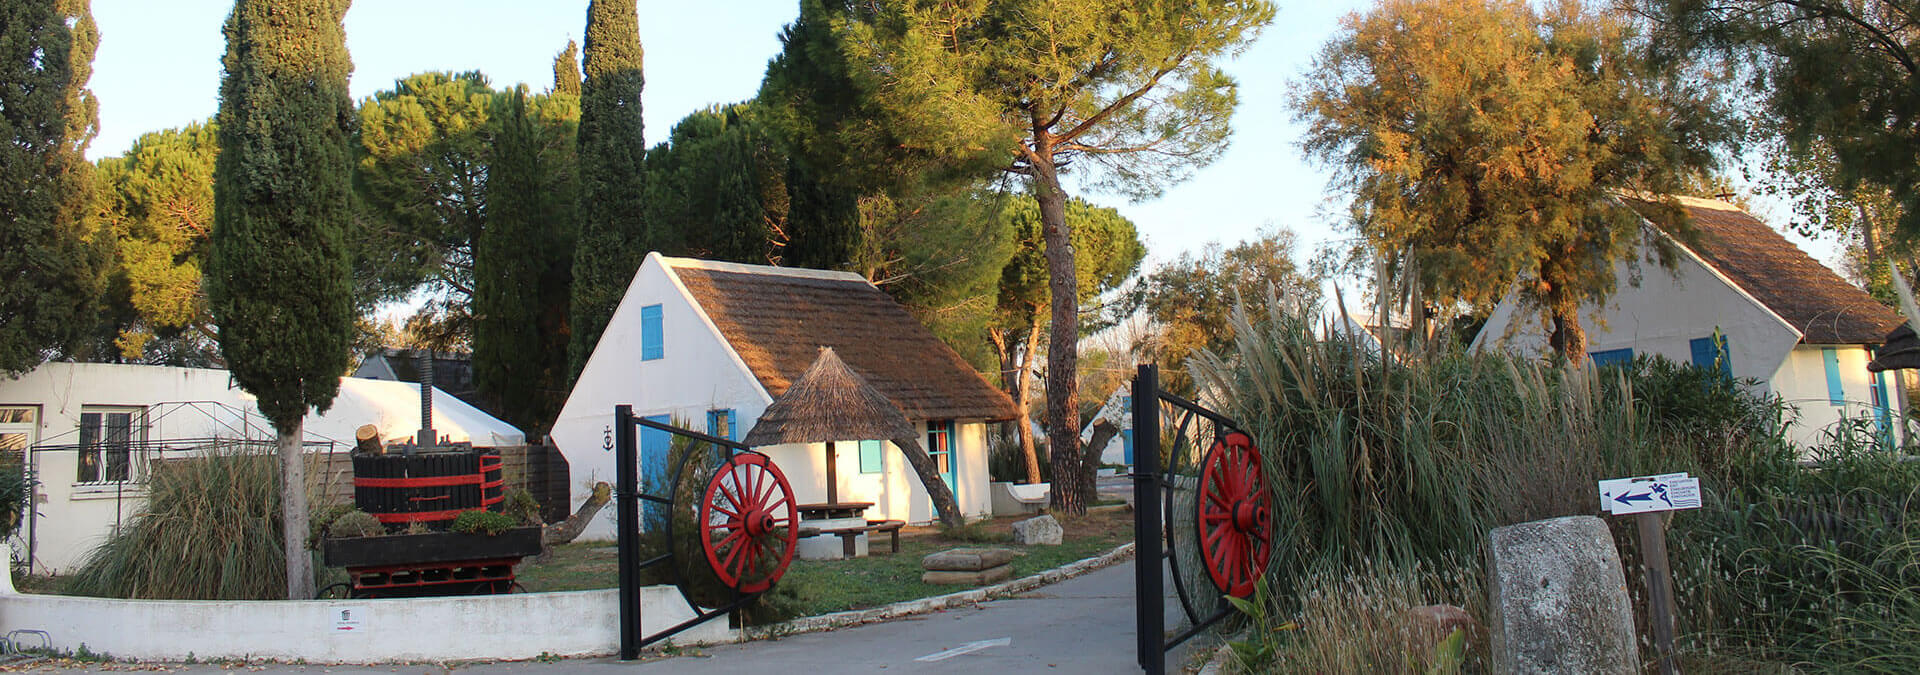 Camping le Camarguais, Camping Montpellier